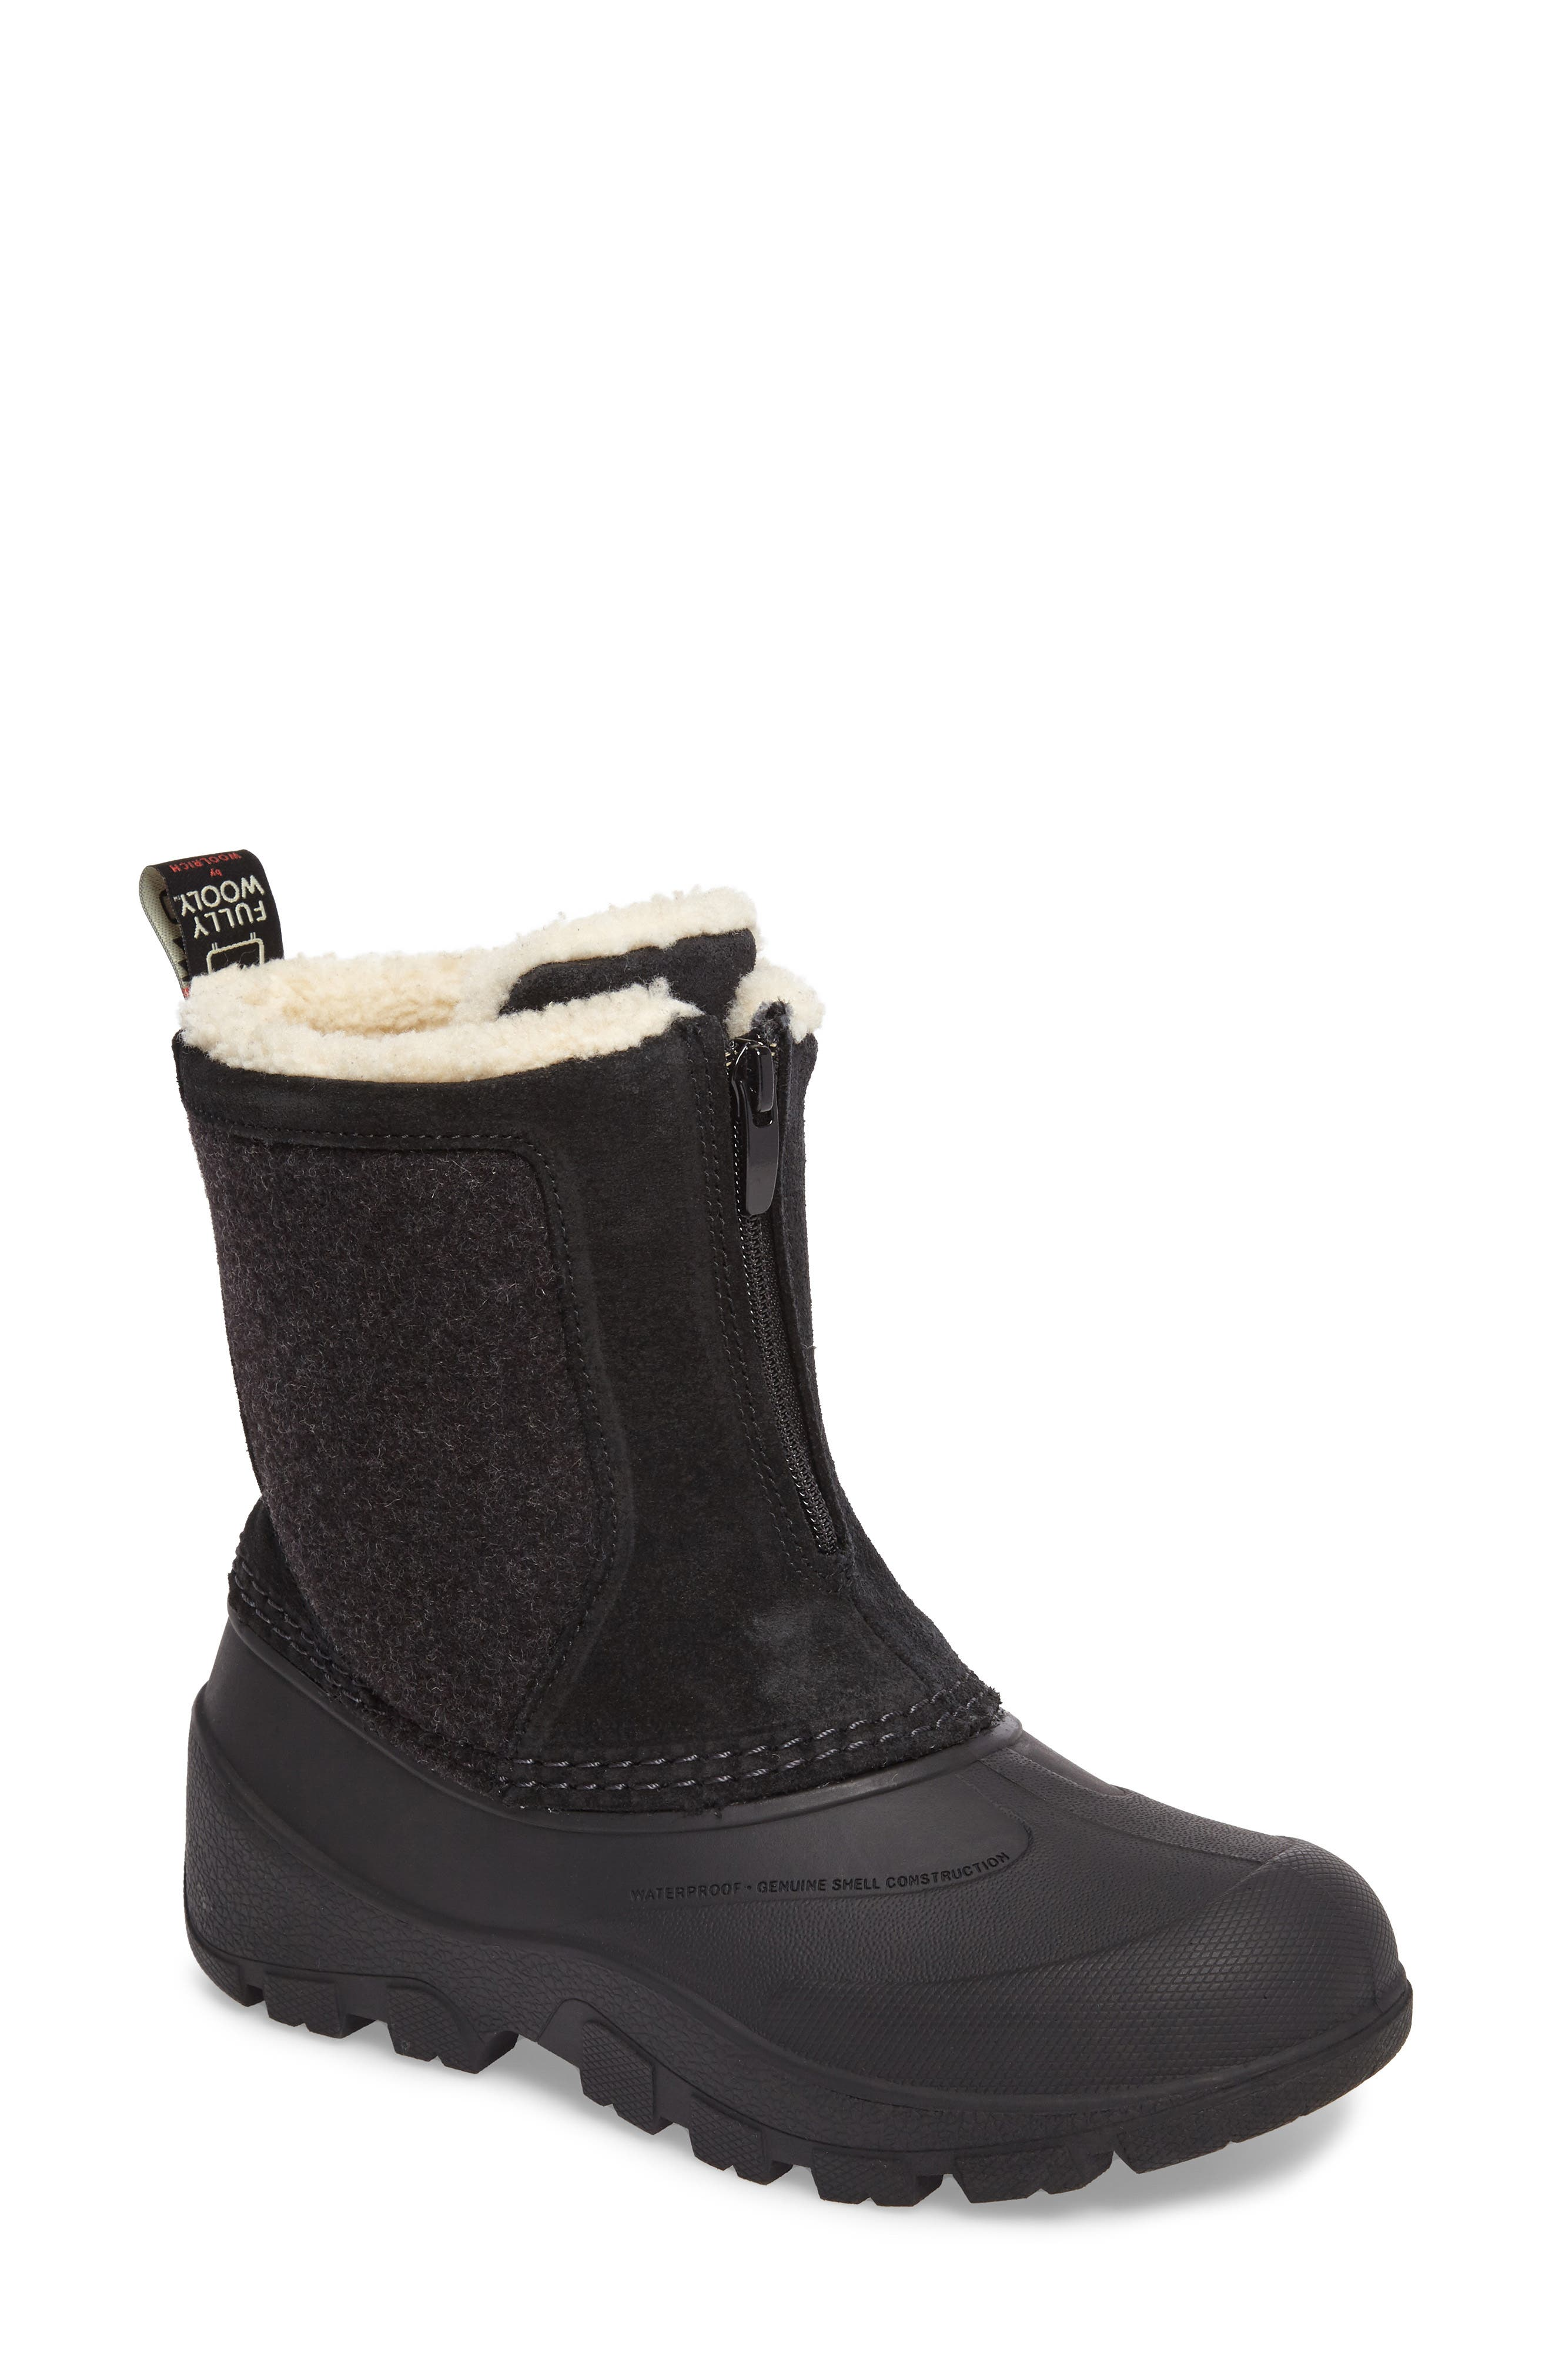 Fully Wooly Icecat Waterproof Insulated Winter Boot,                             Main thumbnail 1, color,                             001